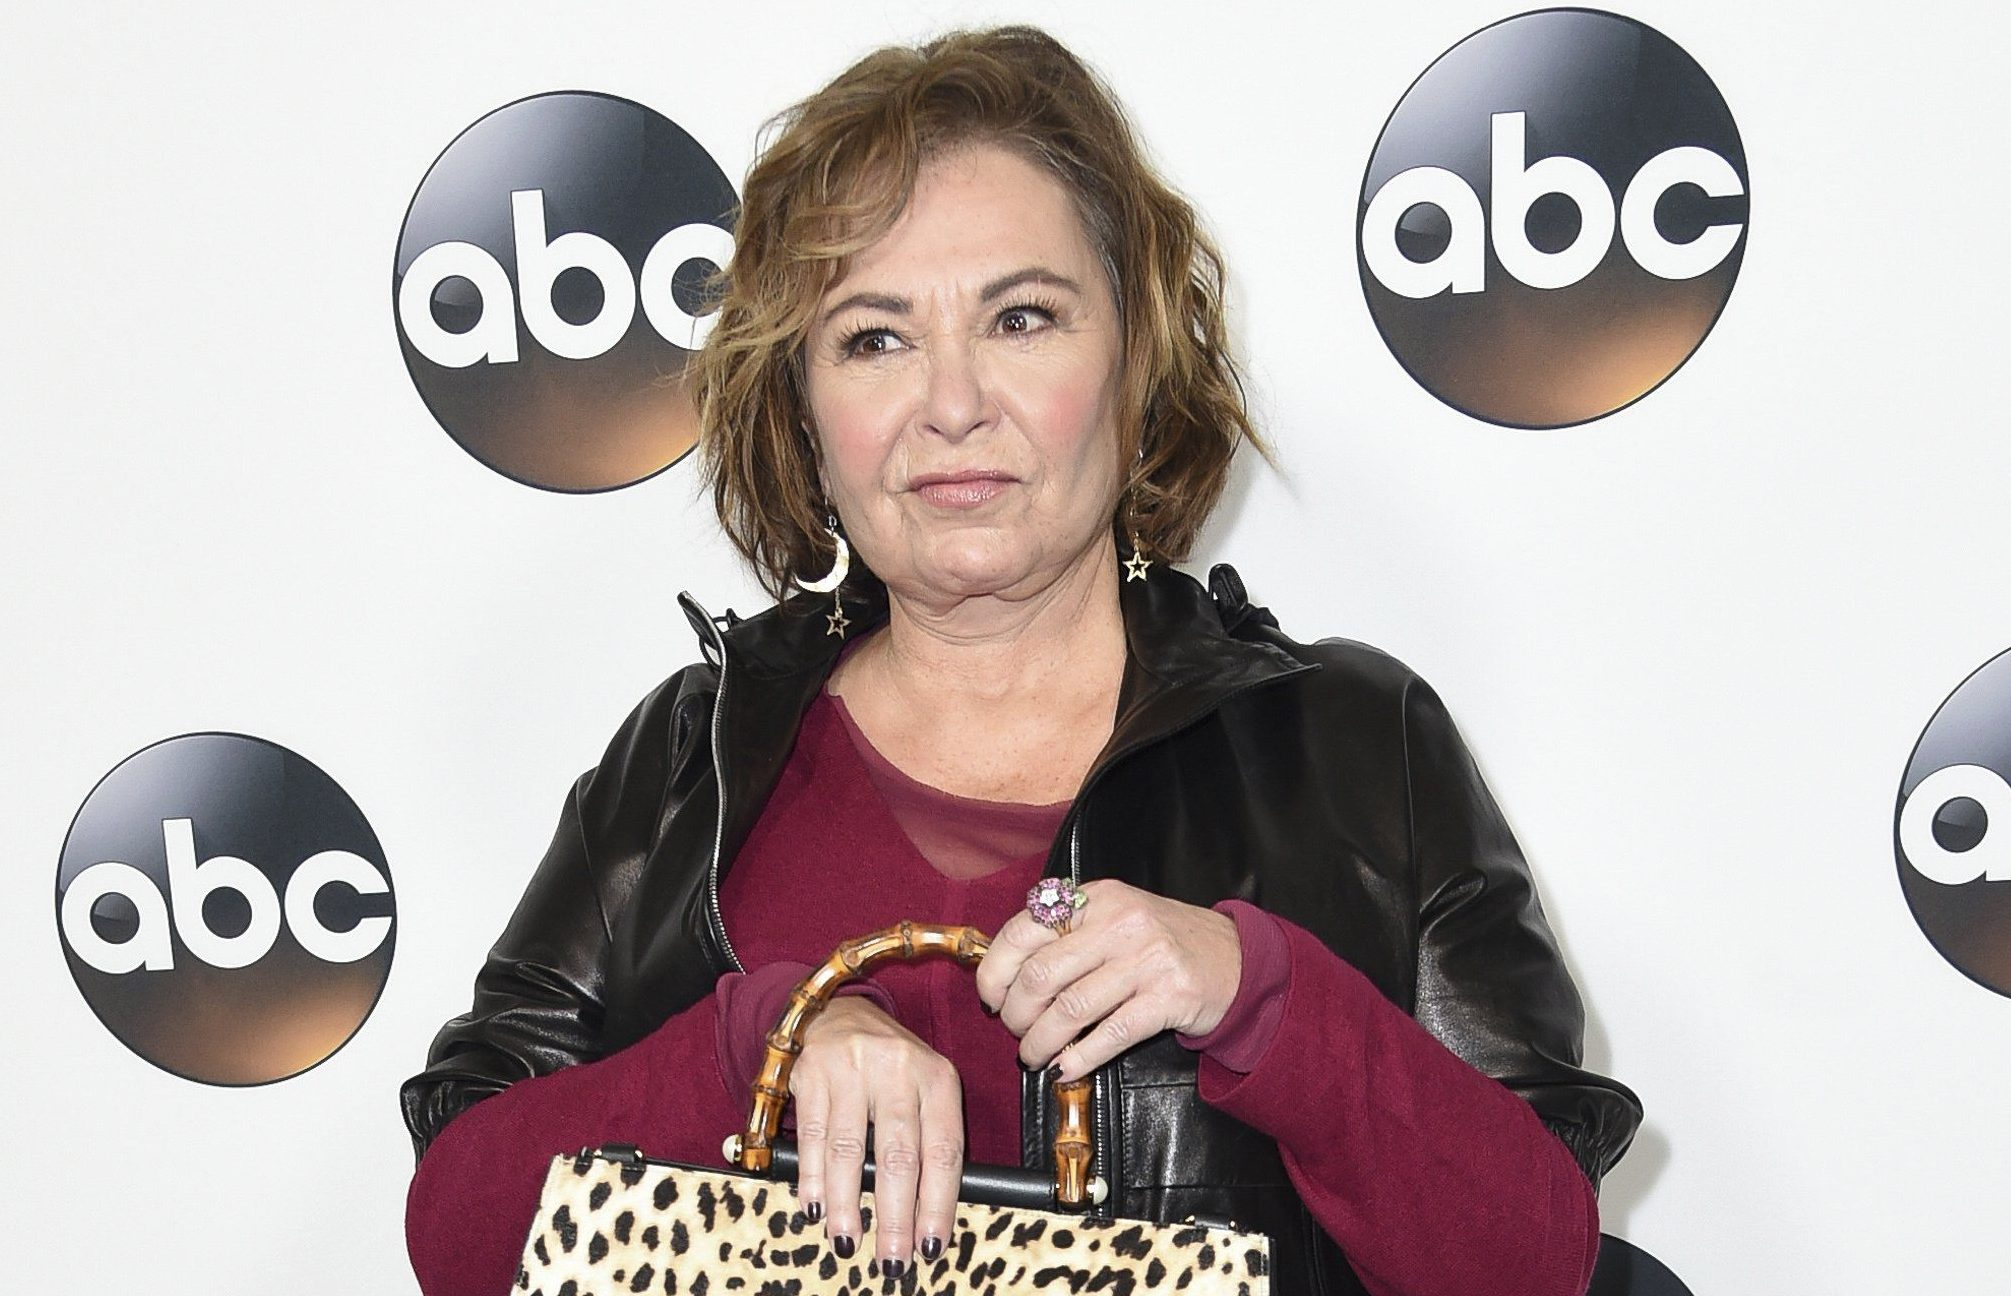 "FILE - In this Jan. 8, 2018 file photo, Roseanne Barr attends the ABC All-Star Party arrivals during the Disney/ABC Television Critics Association Winter Press Tour in Pasadena, Calif. Barr is blaming a racist tweet that got her hit show canceled on the insomnia medication Ambien, prompting its maker to respond that ""racism is not a known side effect."" (Photo by Richard Shotwell/Invision/AP, File)"